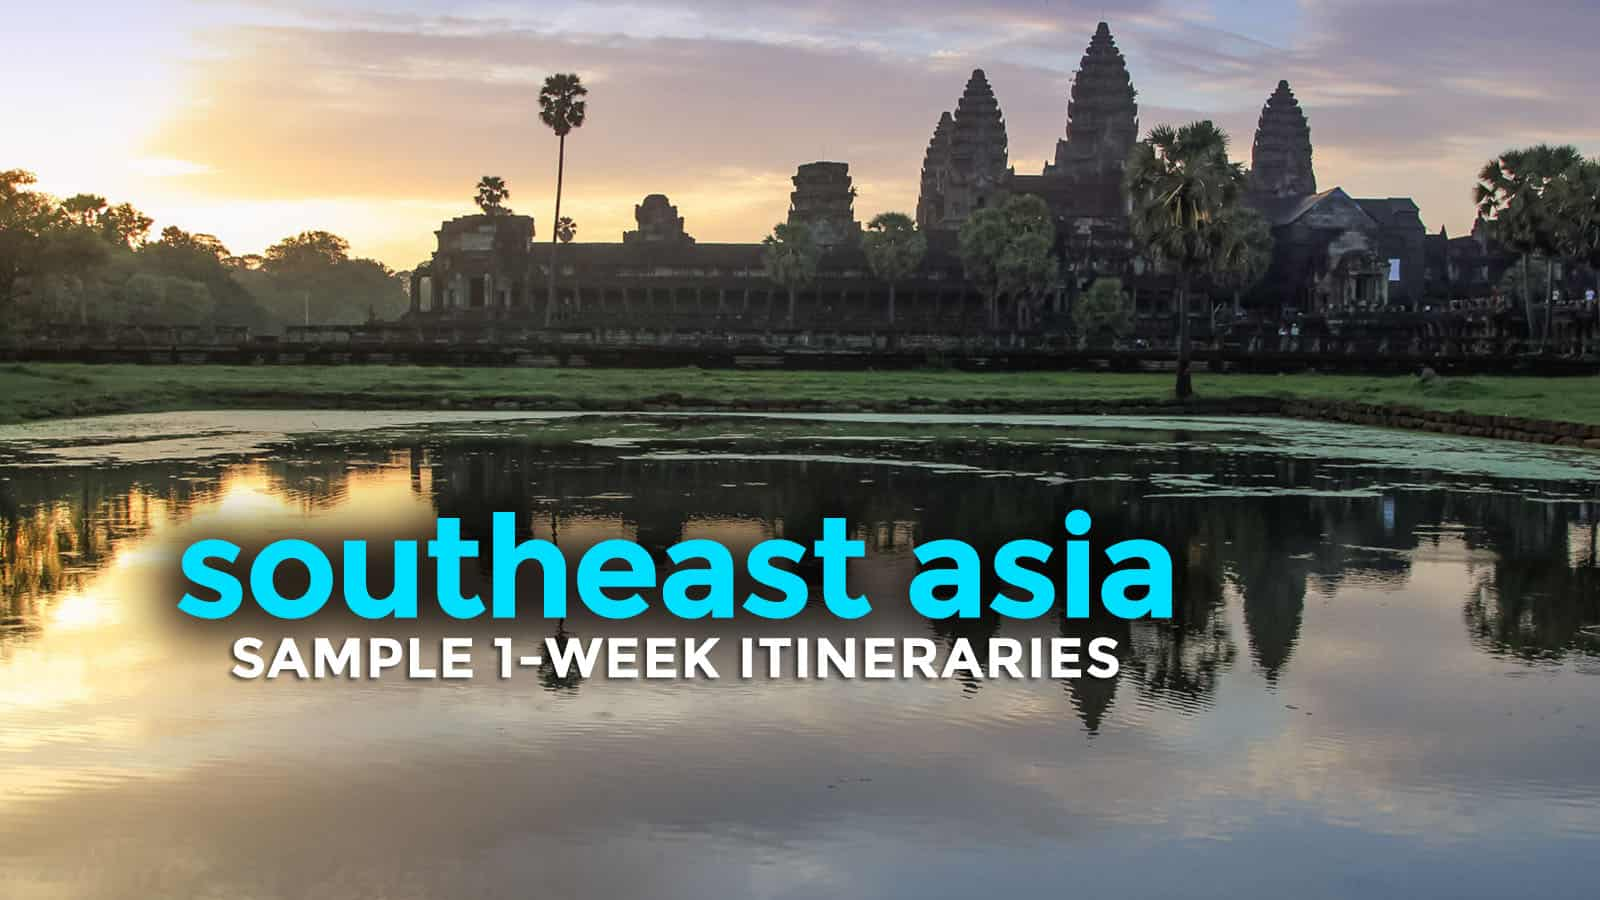 SOUTHEAST ASIA: Sample Itineraries (5-7 Days) | The Poor Traveler Blog